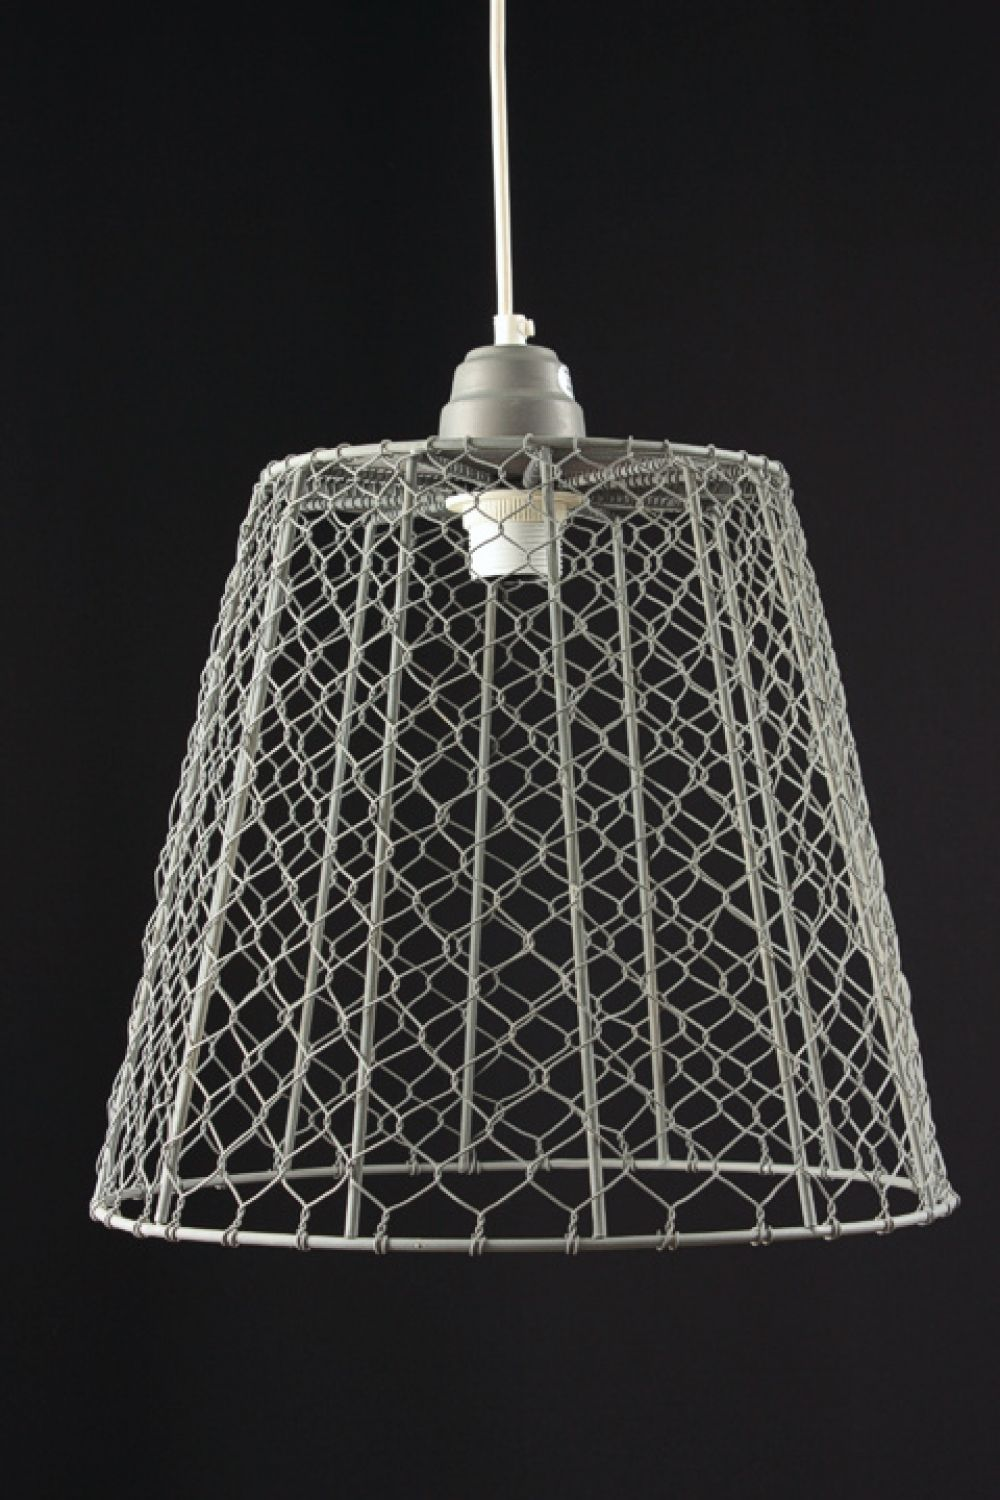 Wire mesh lamp shades lamps lighting pinterest wire mesh wire mesh lamp shades keyboard keysfo Choice Image